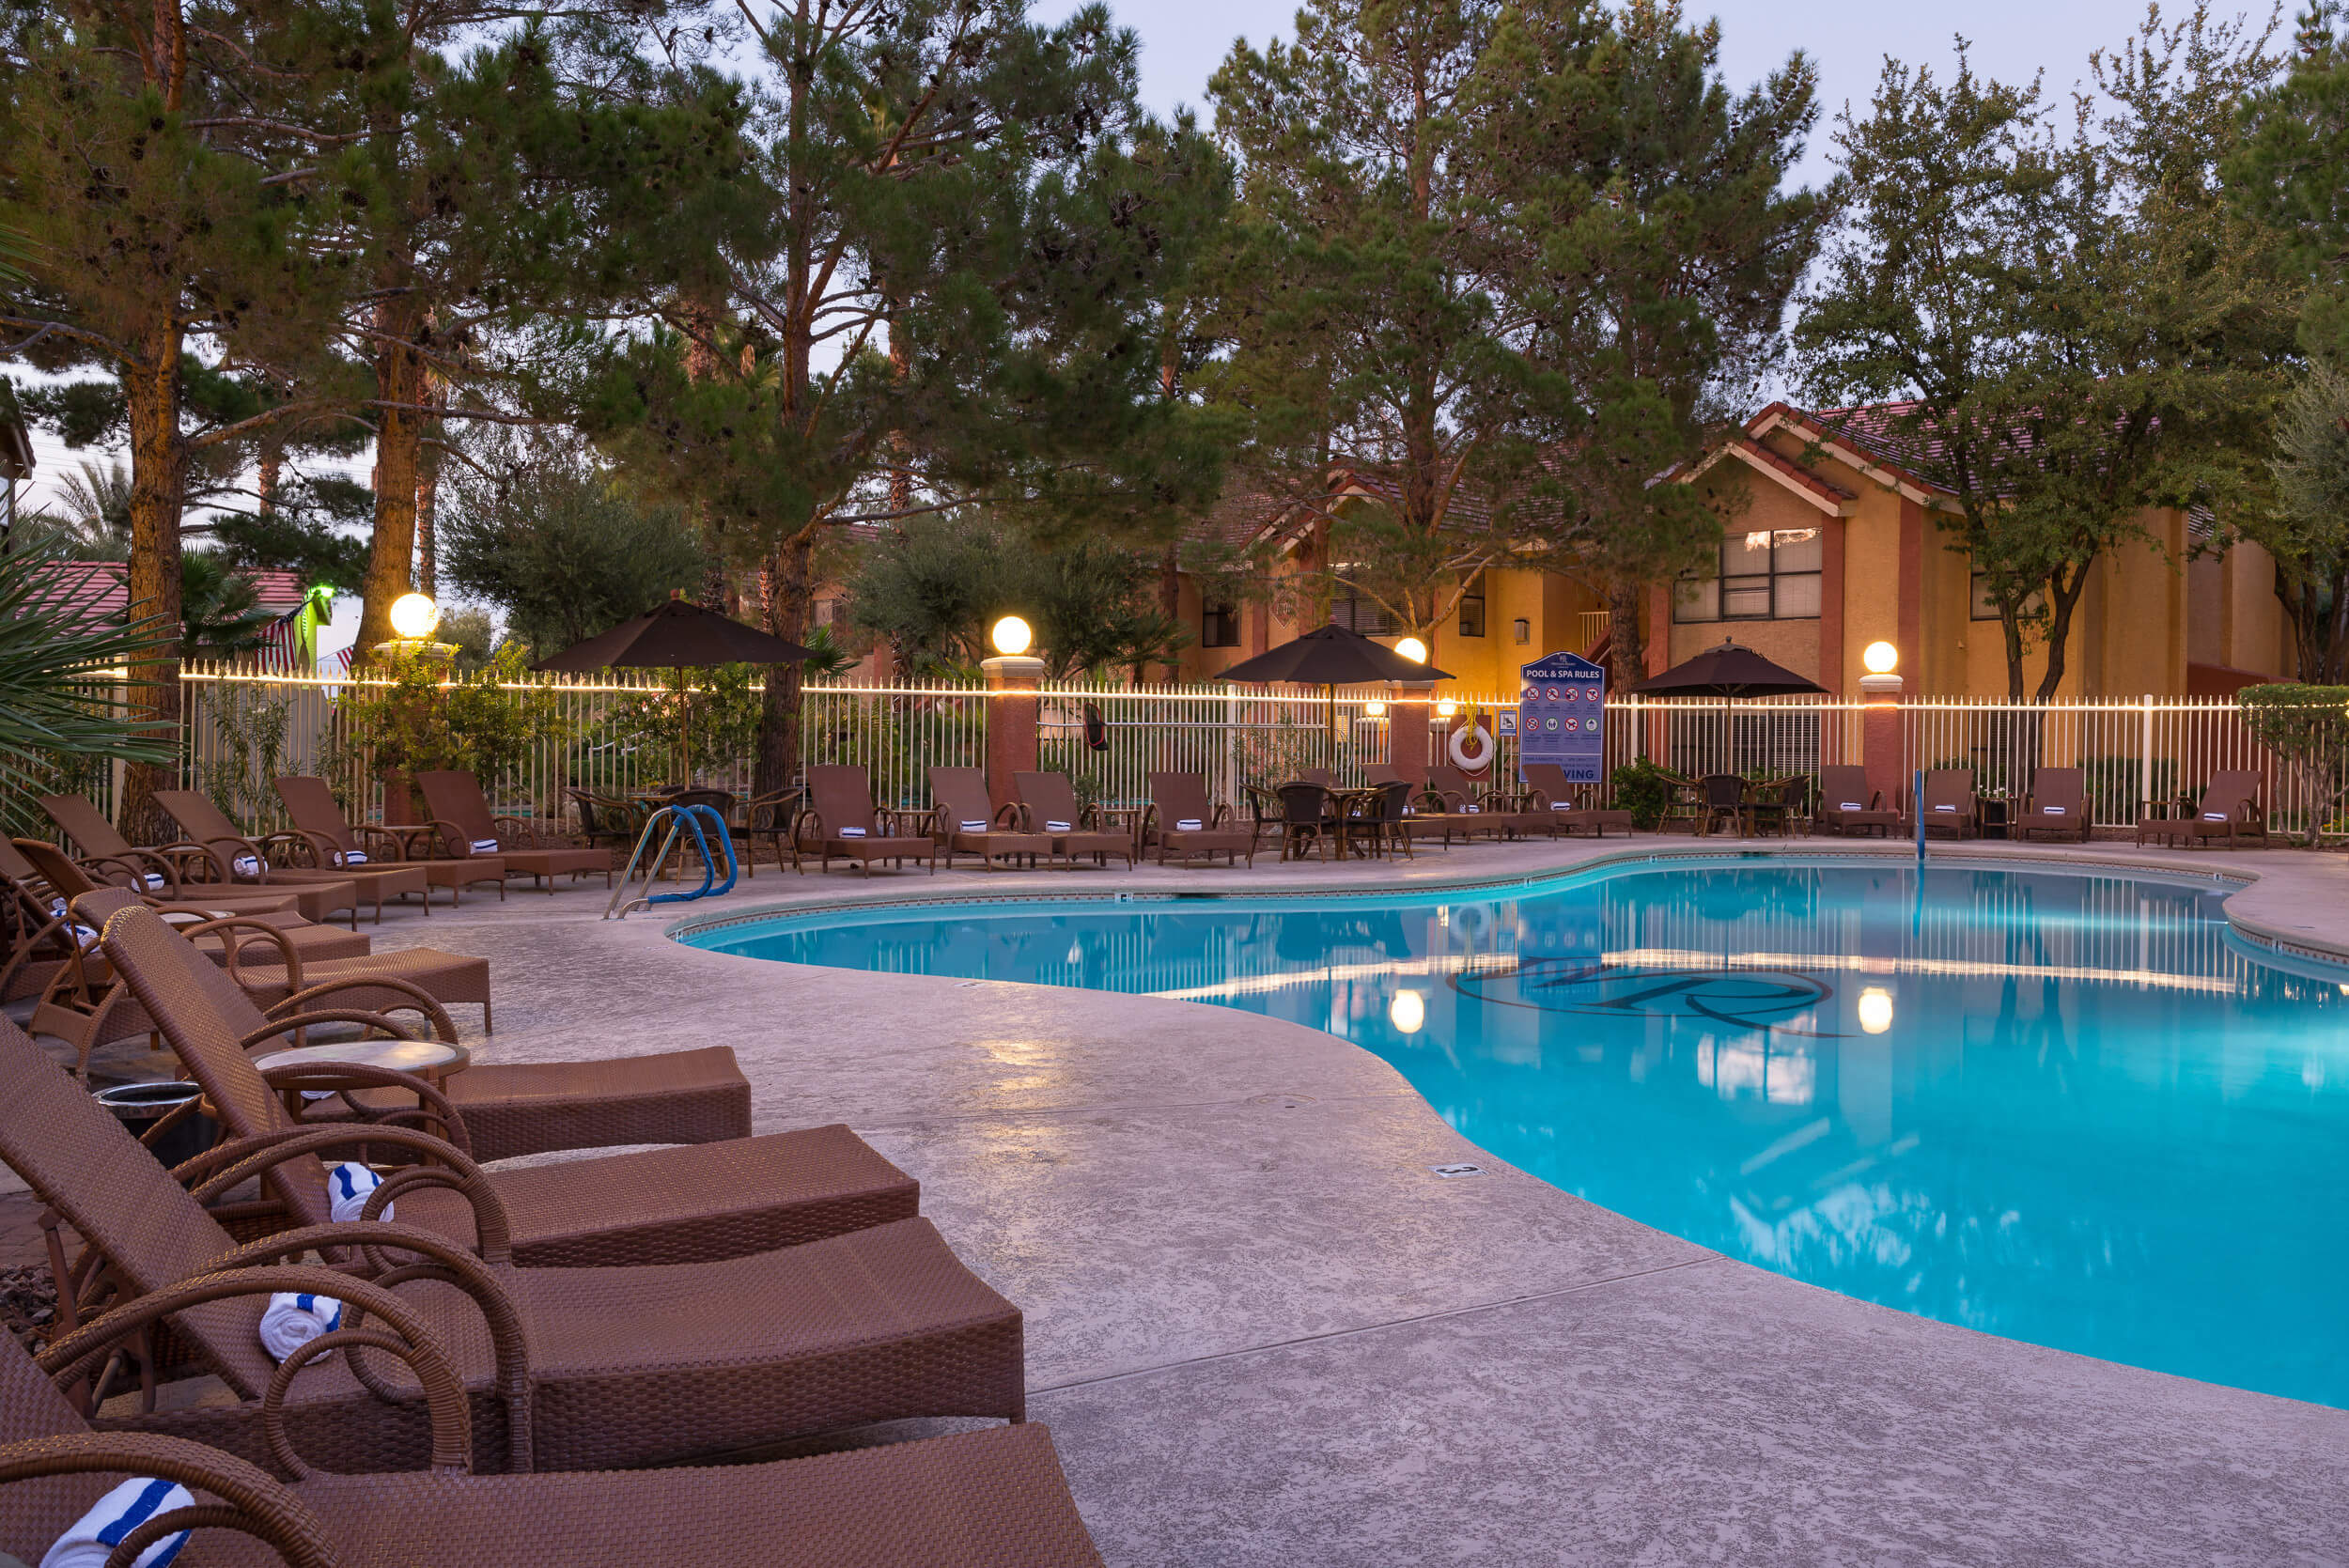 Heated outdoor pool and hot tub surrounded by lounge chairs at Westgate's Las Vegas Flamingo Resort | Westgate Flamingo Bay Resort | Westgate Resorts